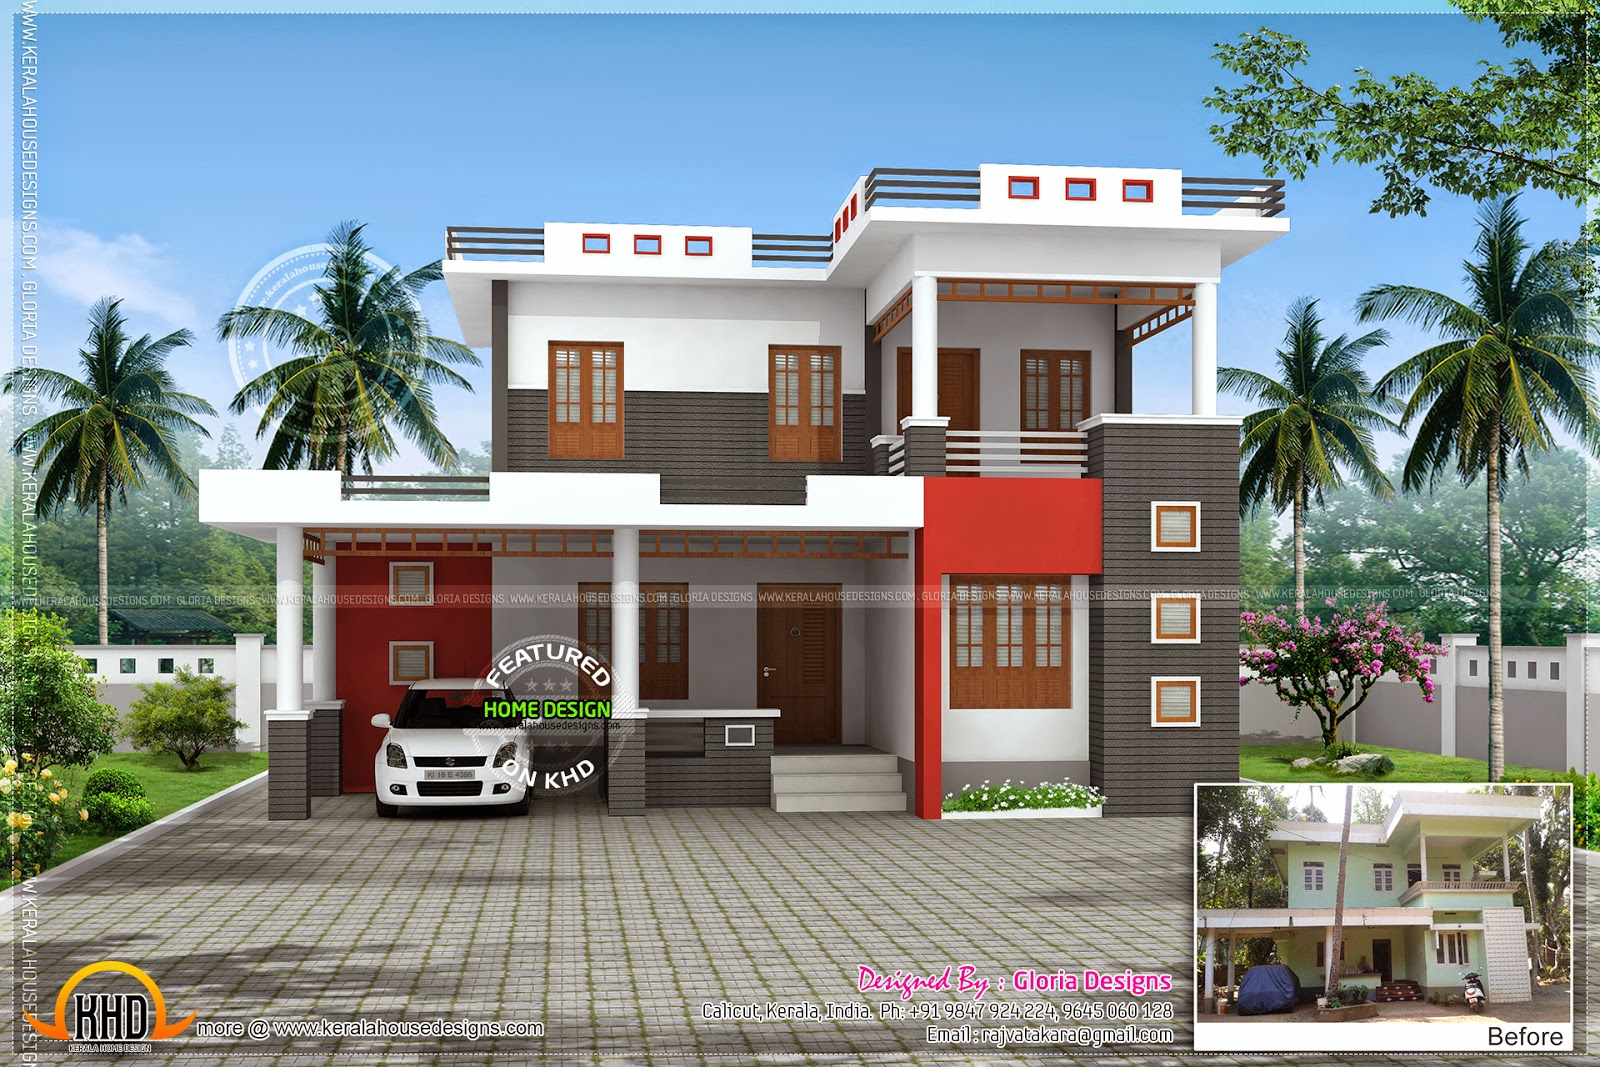 Renovation 3d model for an old house kerala home design for Kerala new house models